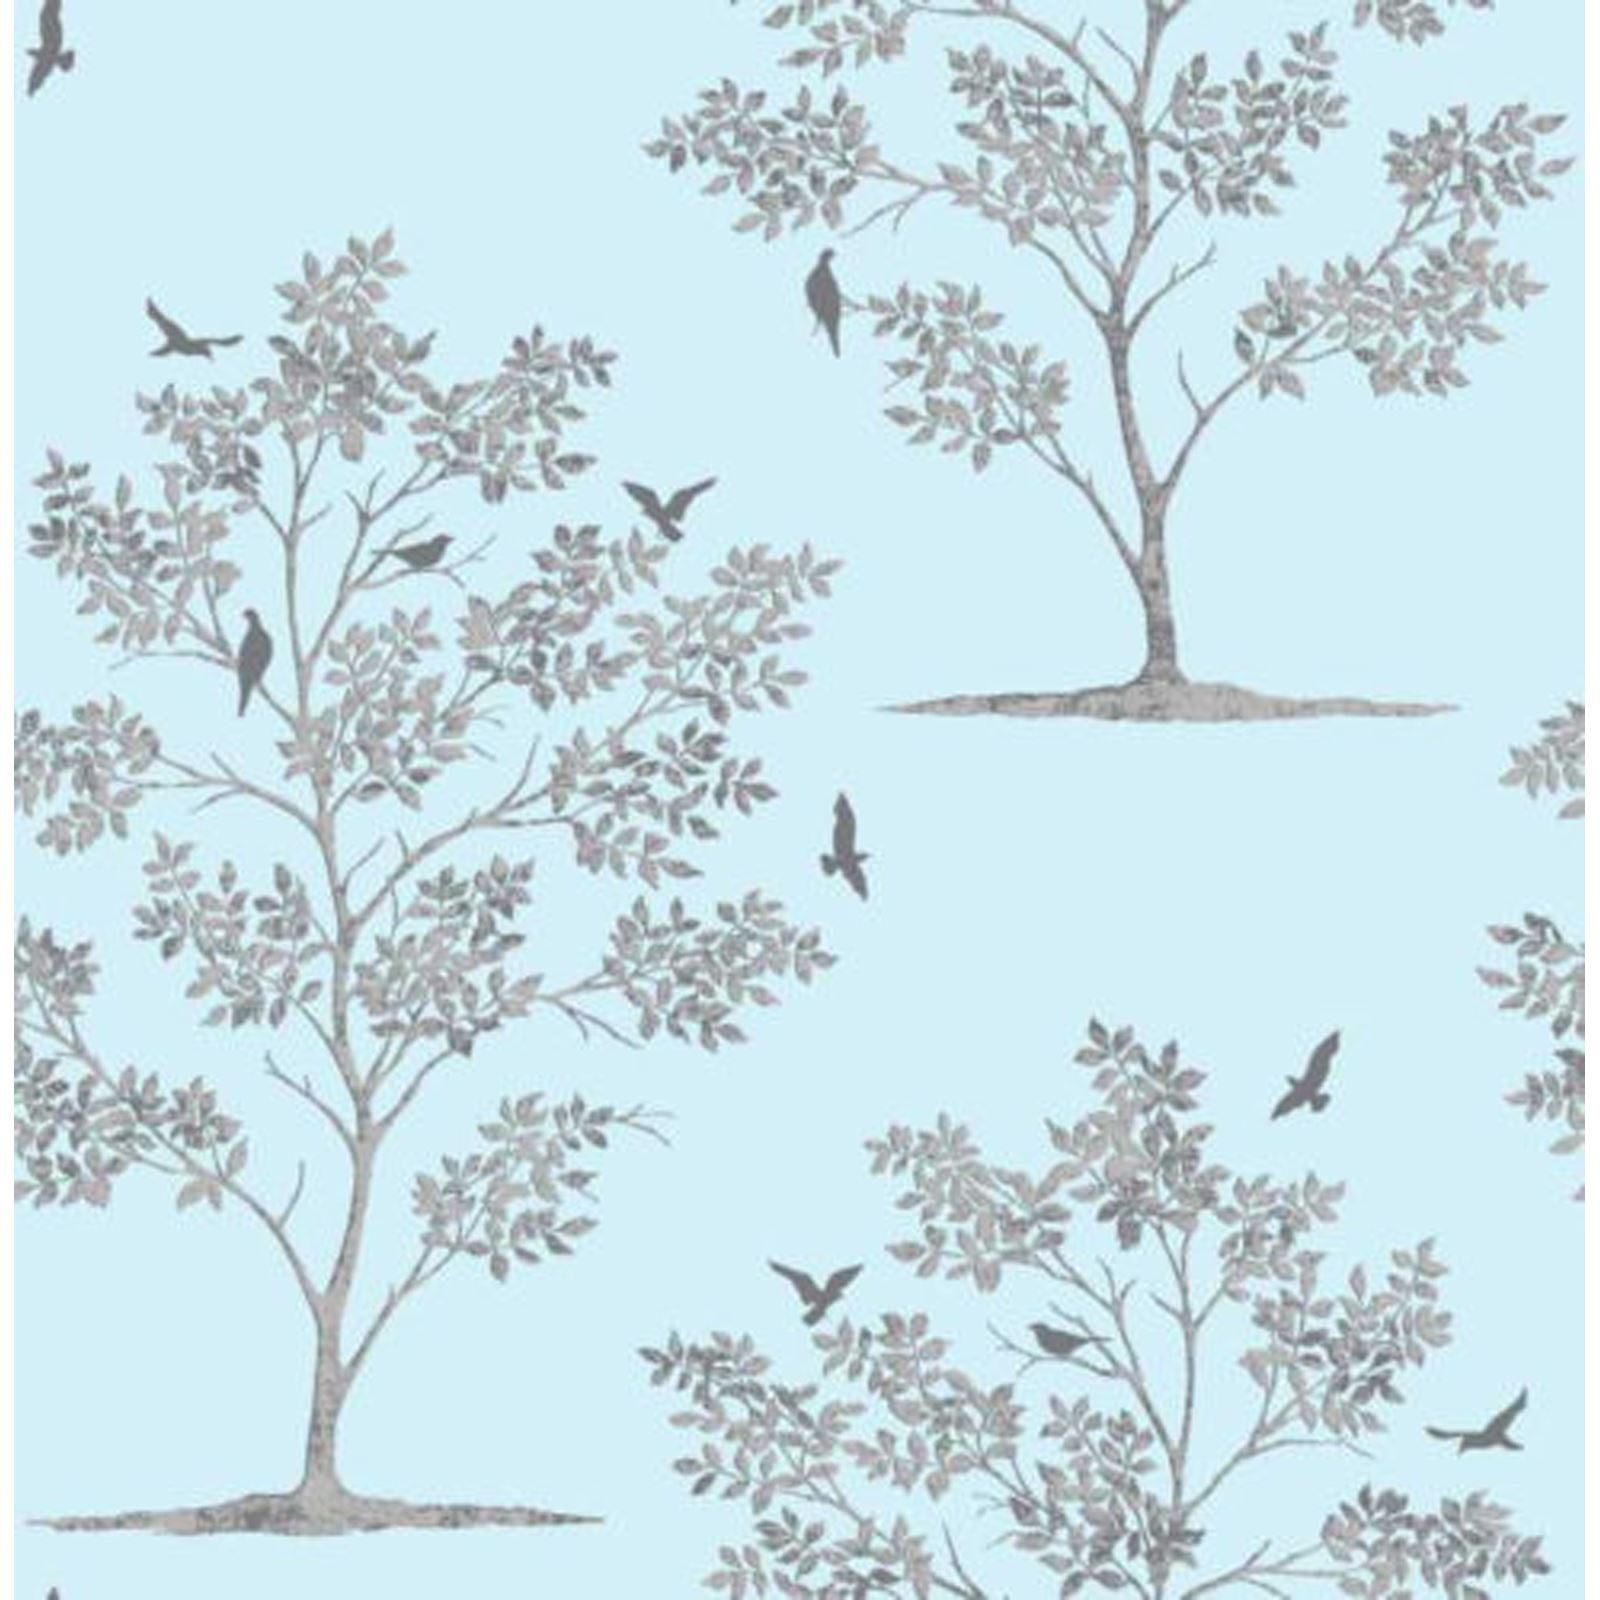 duck egg blue shabby.  Blue FINEDECORTEALDUCKEGGWALLPAPERSHABBYCHIC Intended Duck Egg Blue Shabby I